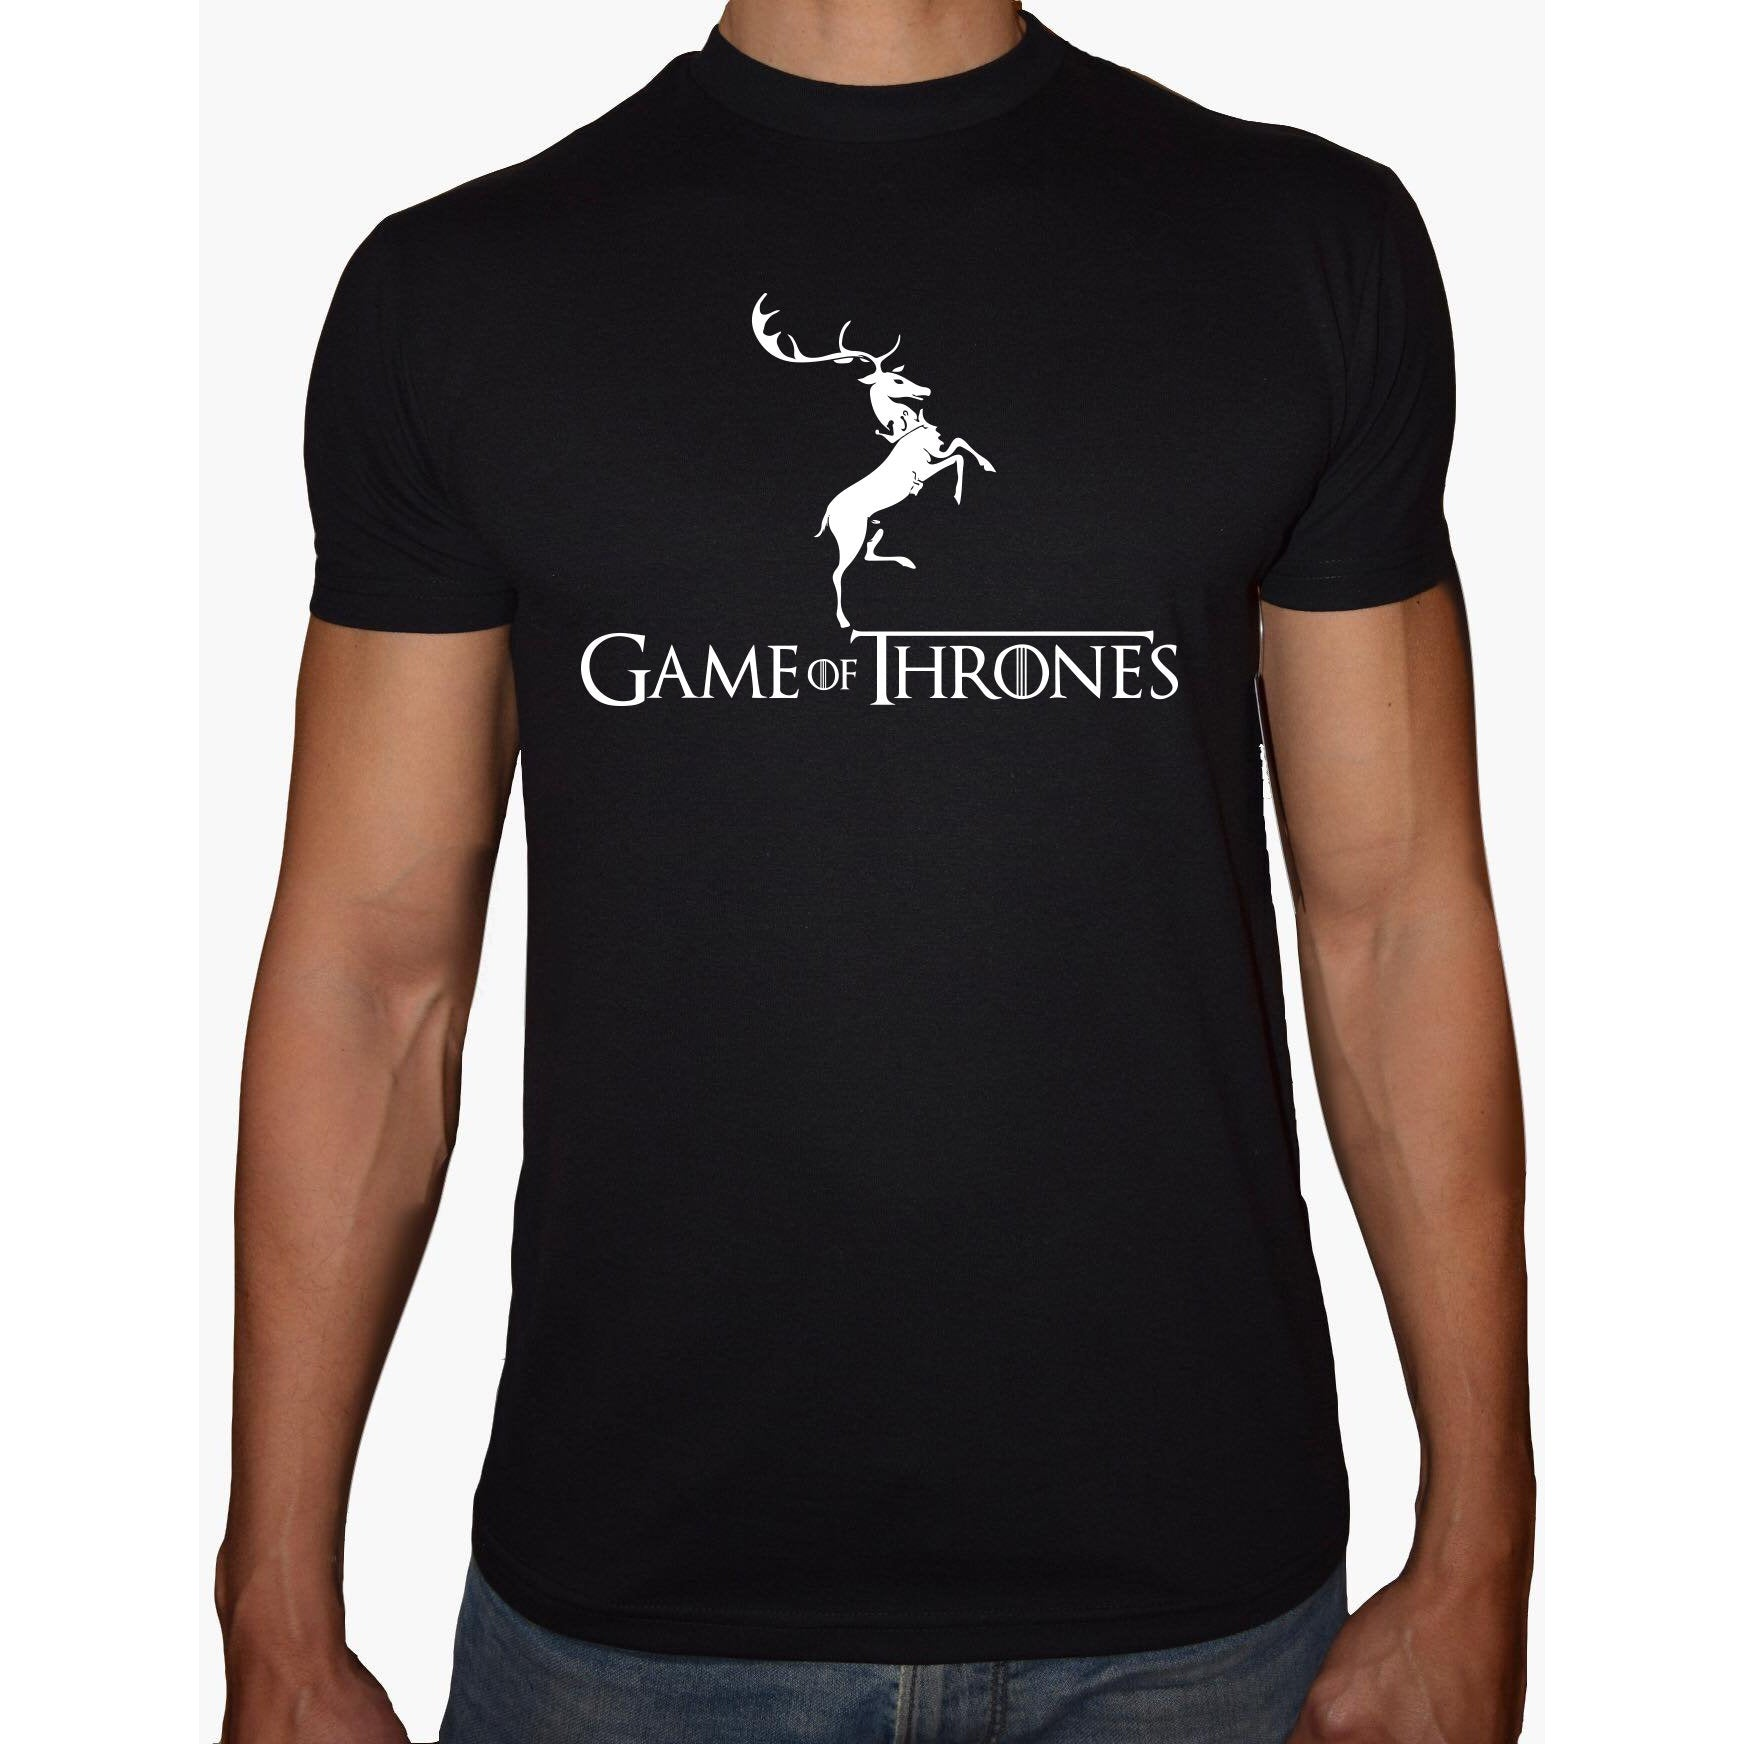 Phoenix BLACK Round Neck Printed T-Shirt Men (Game of thrones)